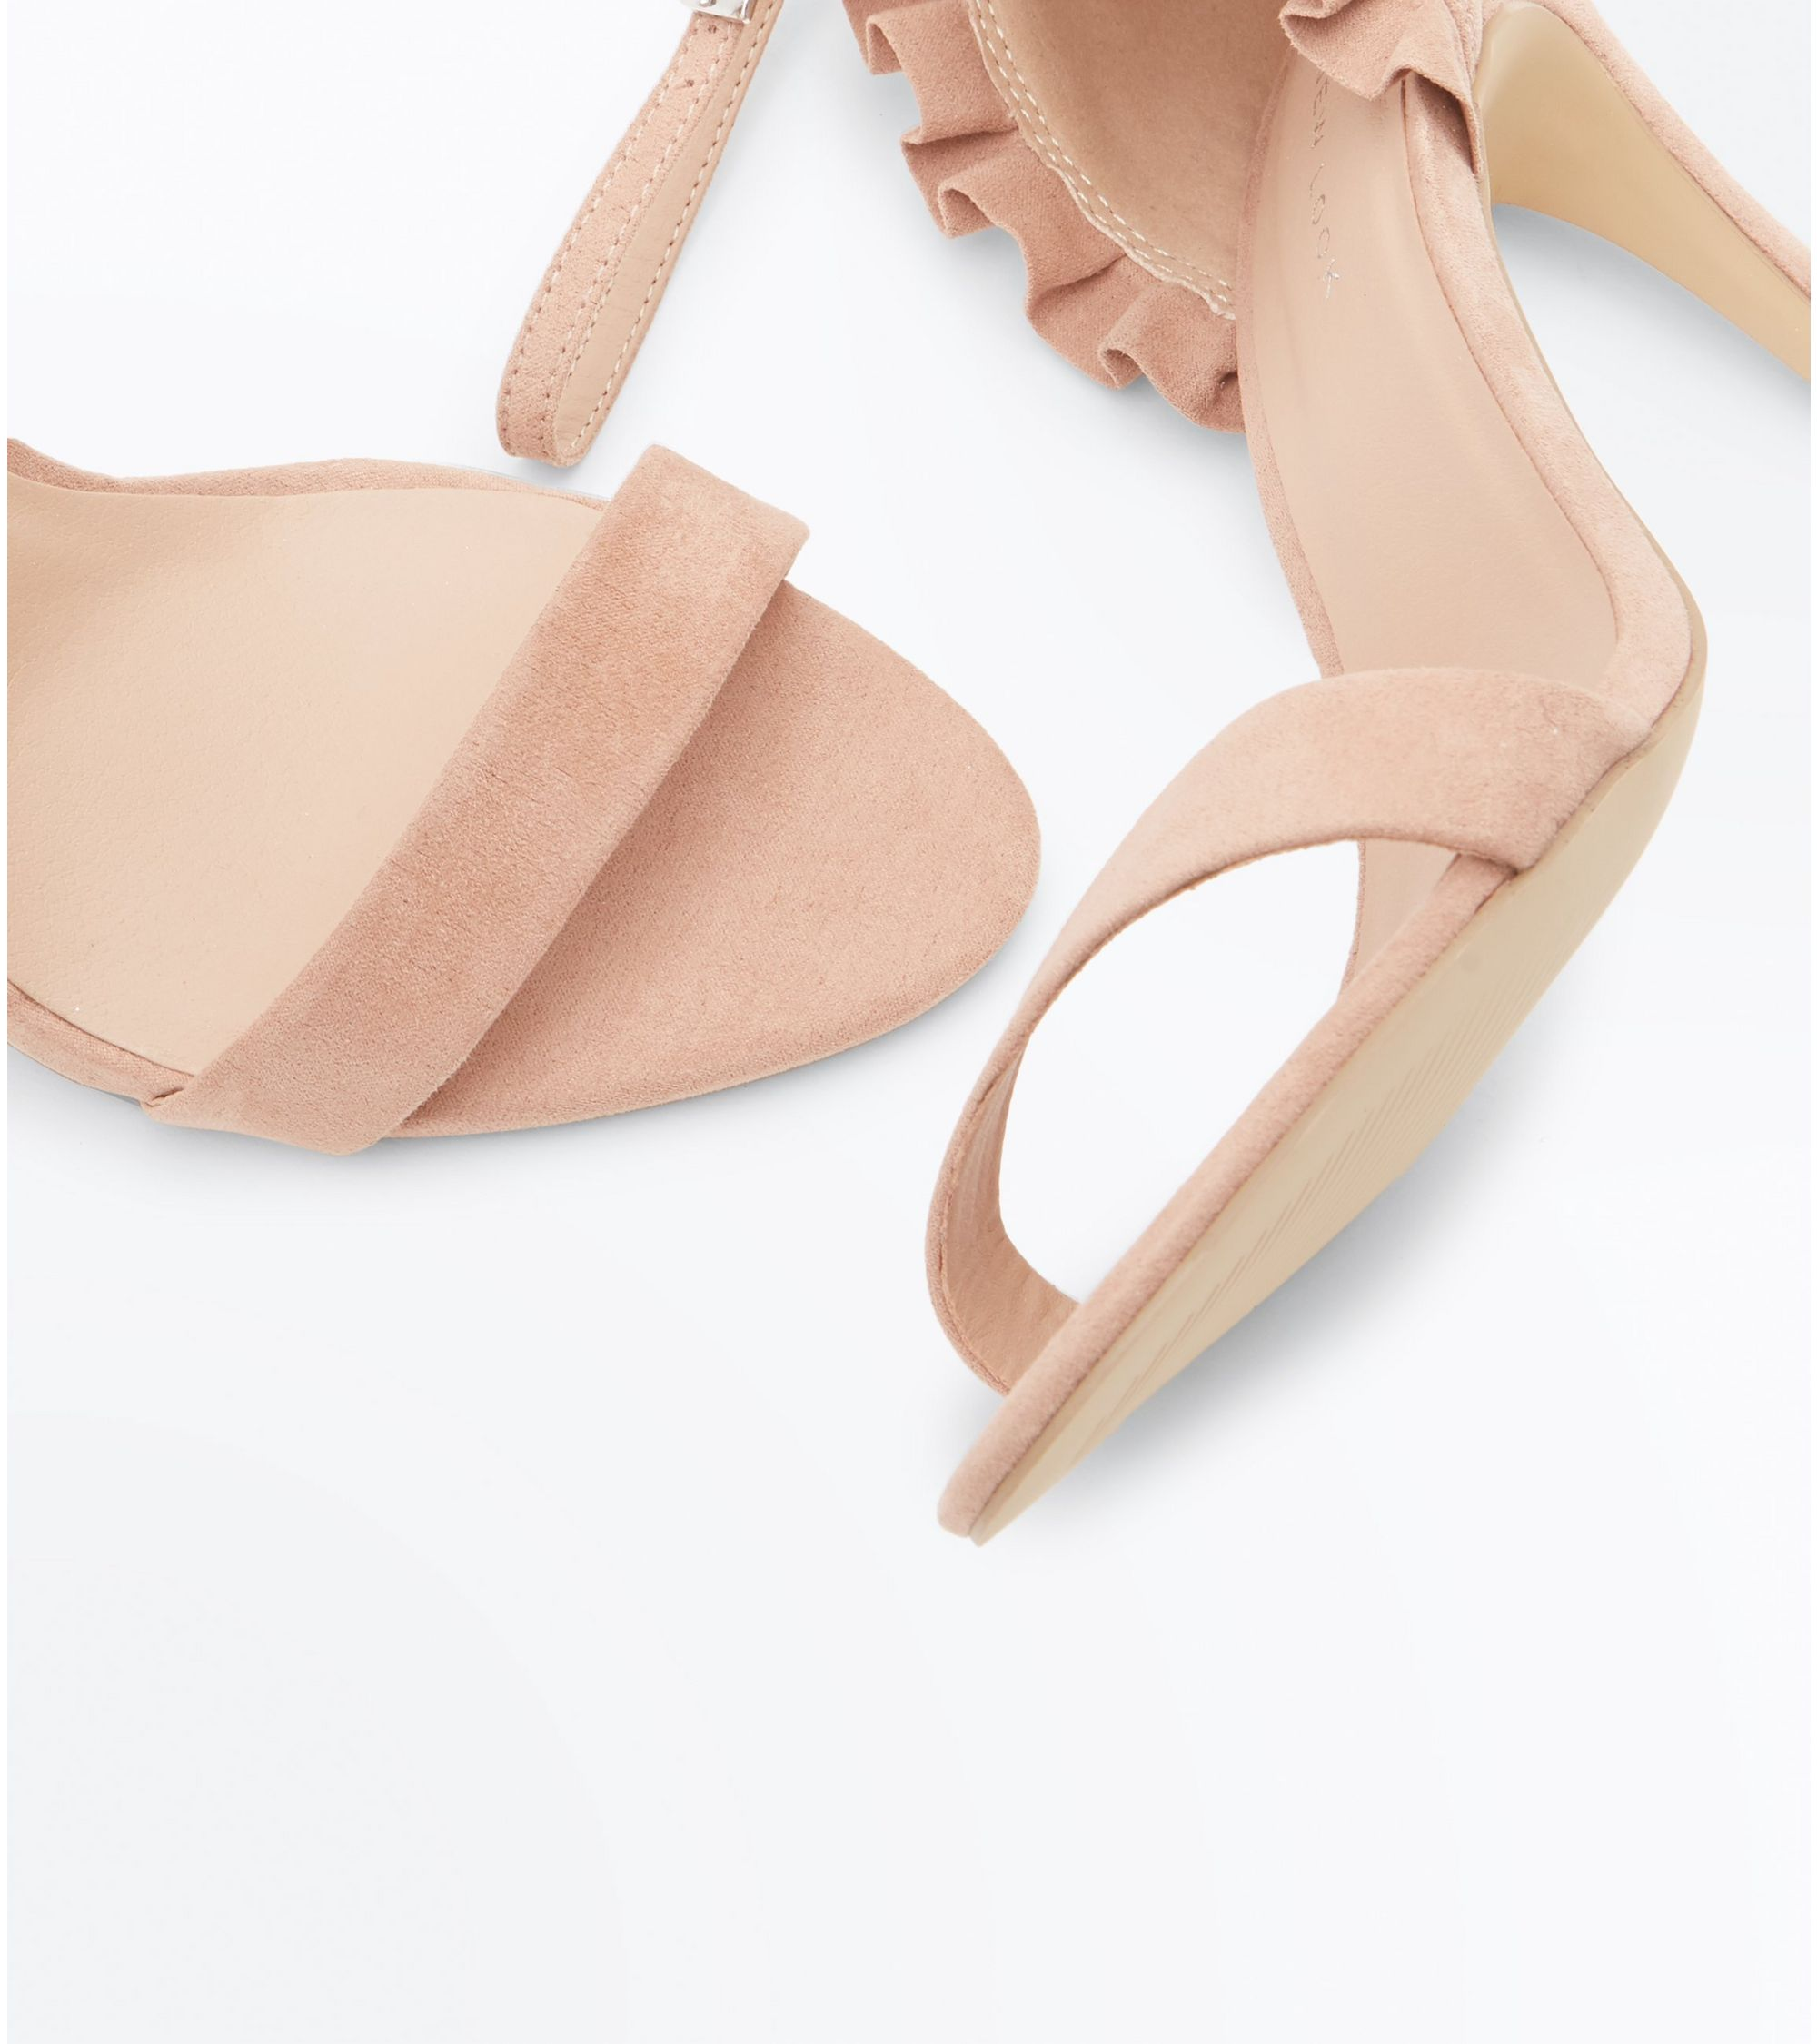 ece08bb32a New Look Nude Suedette Frill Back Stiletto Heel Sandals at £14 ...